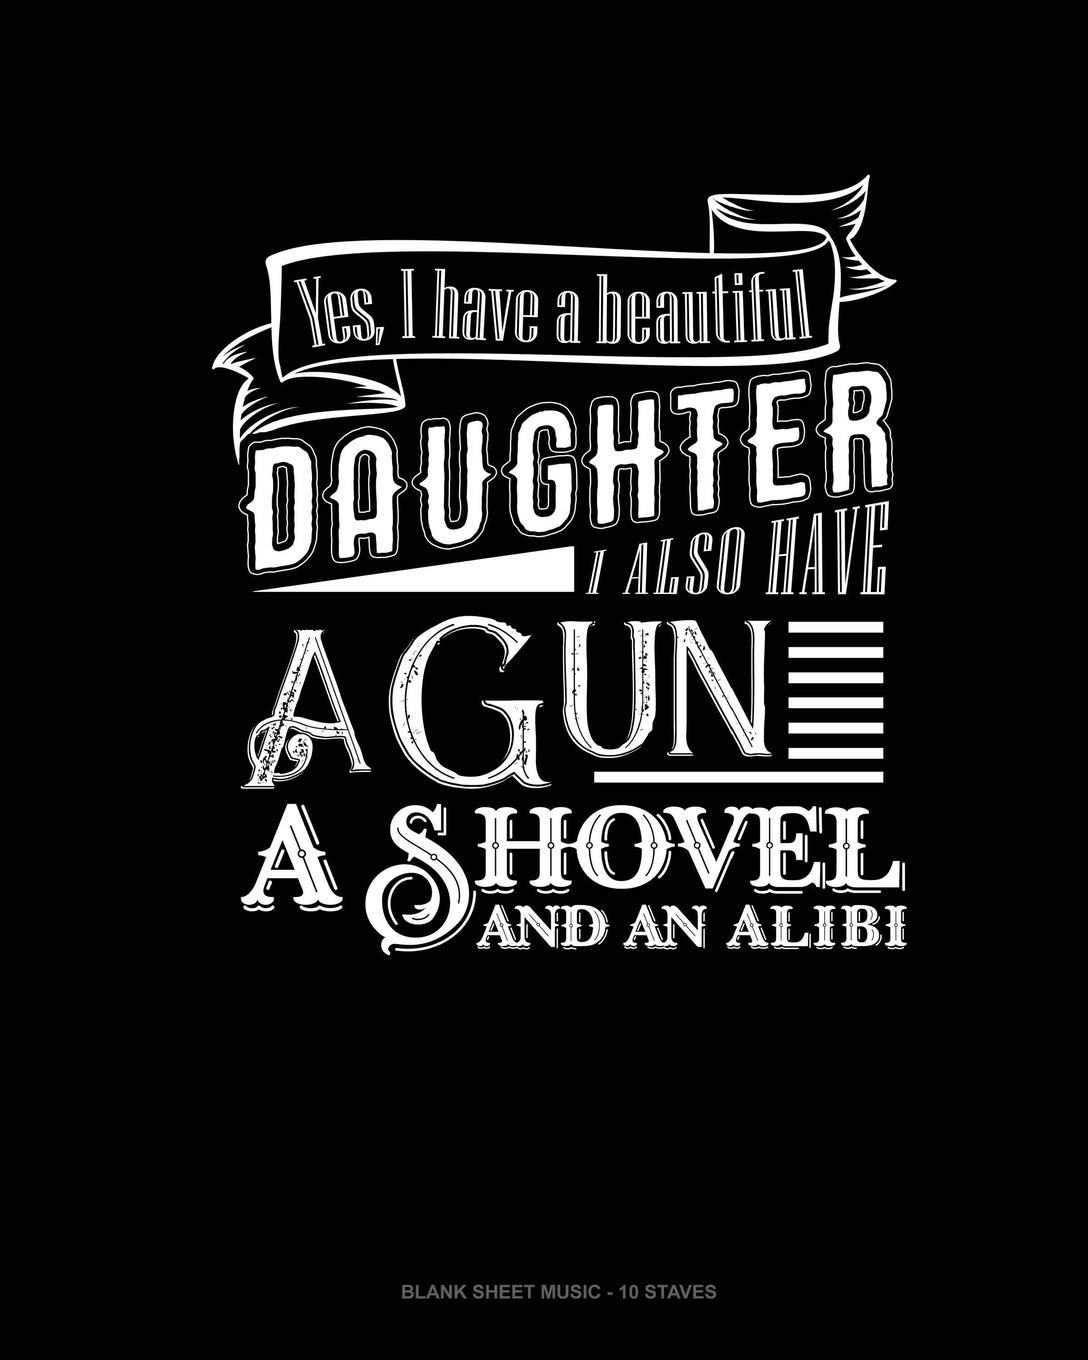 A Shovel Yes I Do Have a Beautiful Daughter I Also Have a Gun And An Alibi